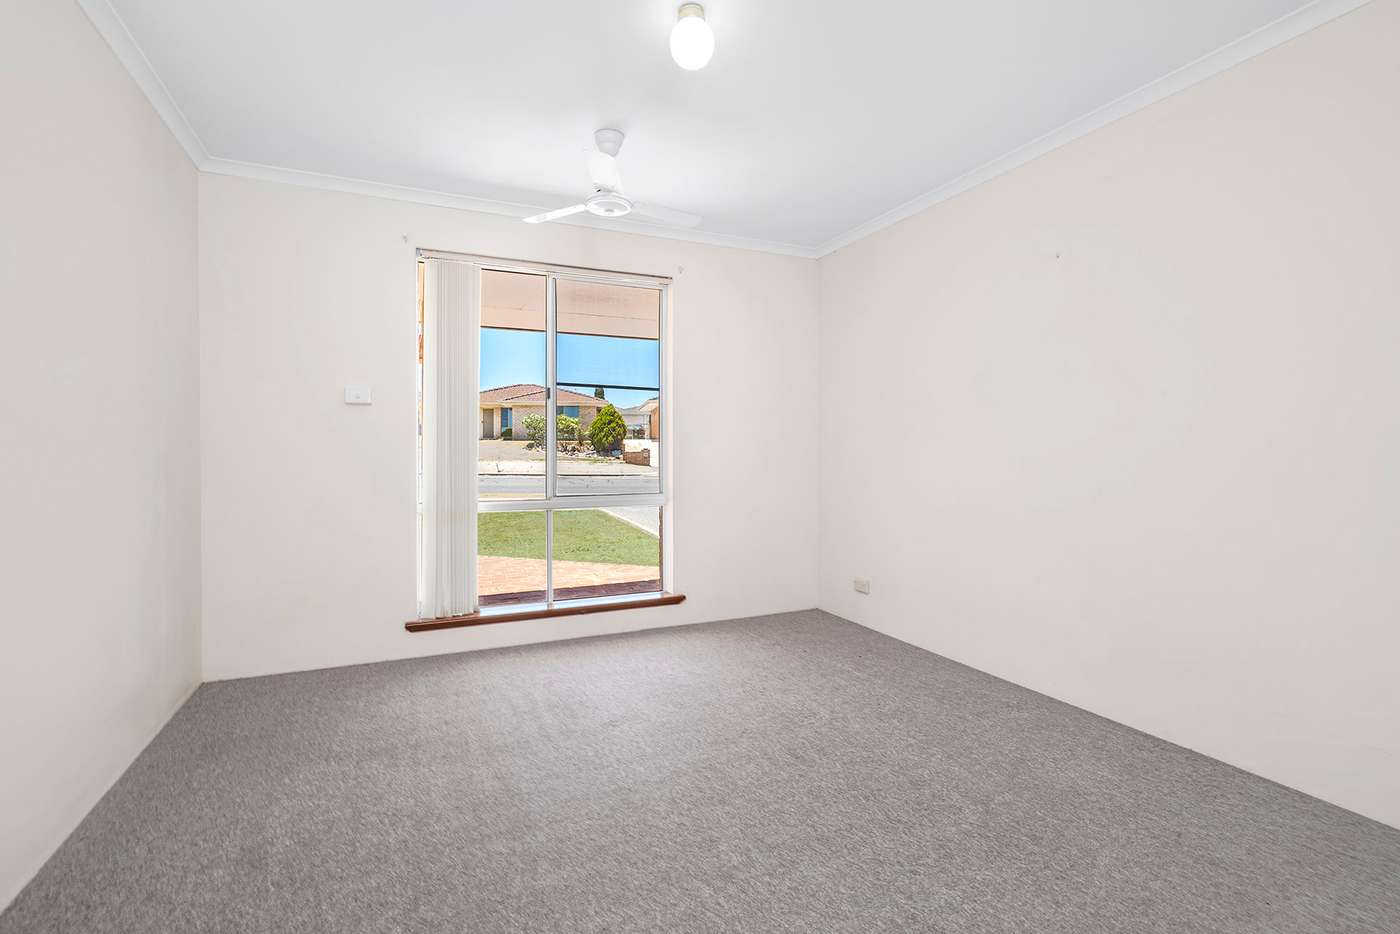 Sixth view of Homely house listing, 386A Durlacher Street, Mount Tarcoola WA 6530